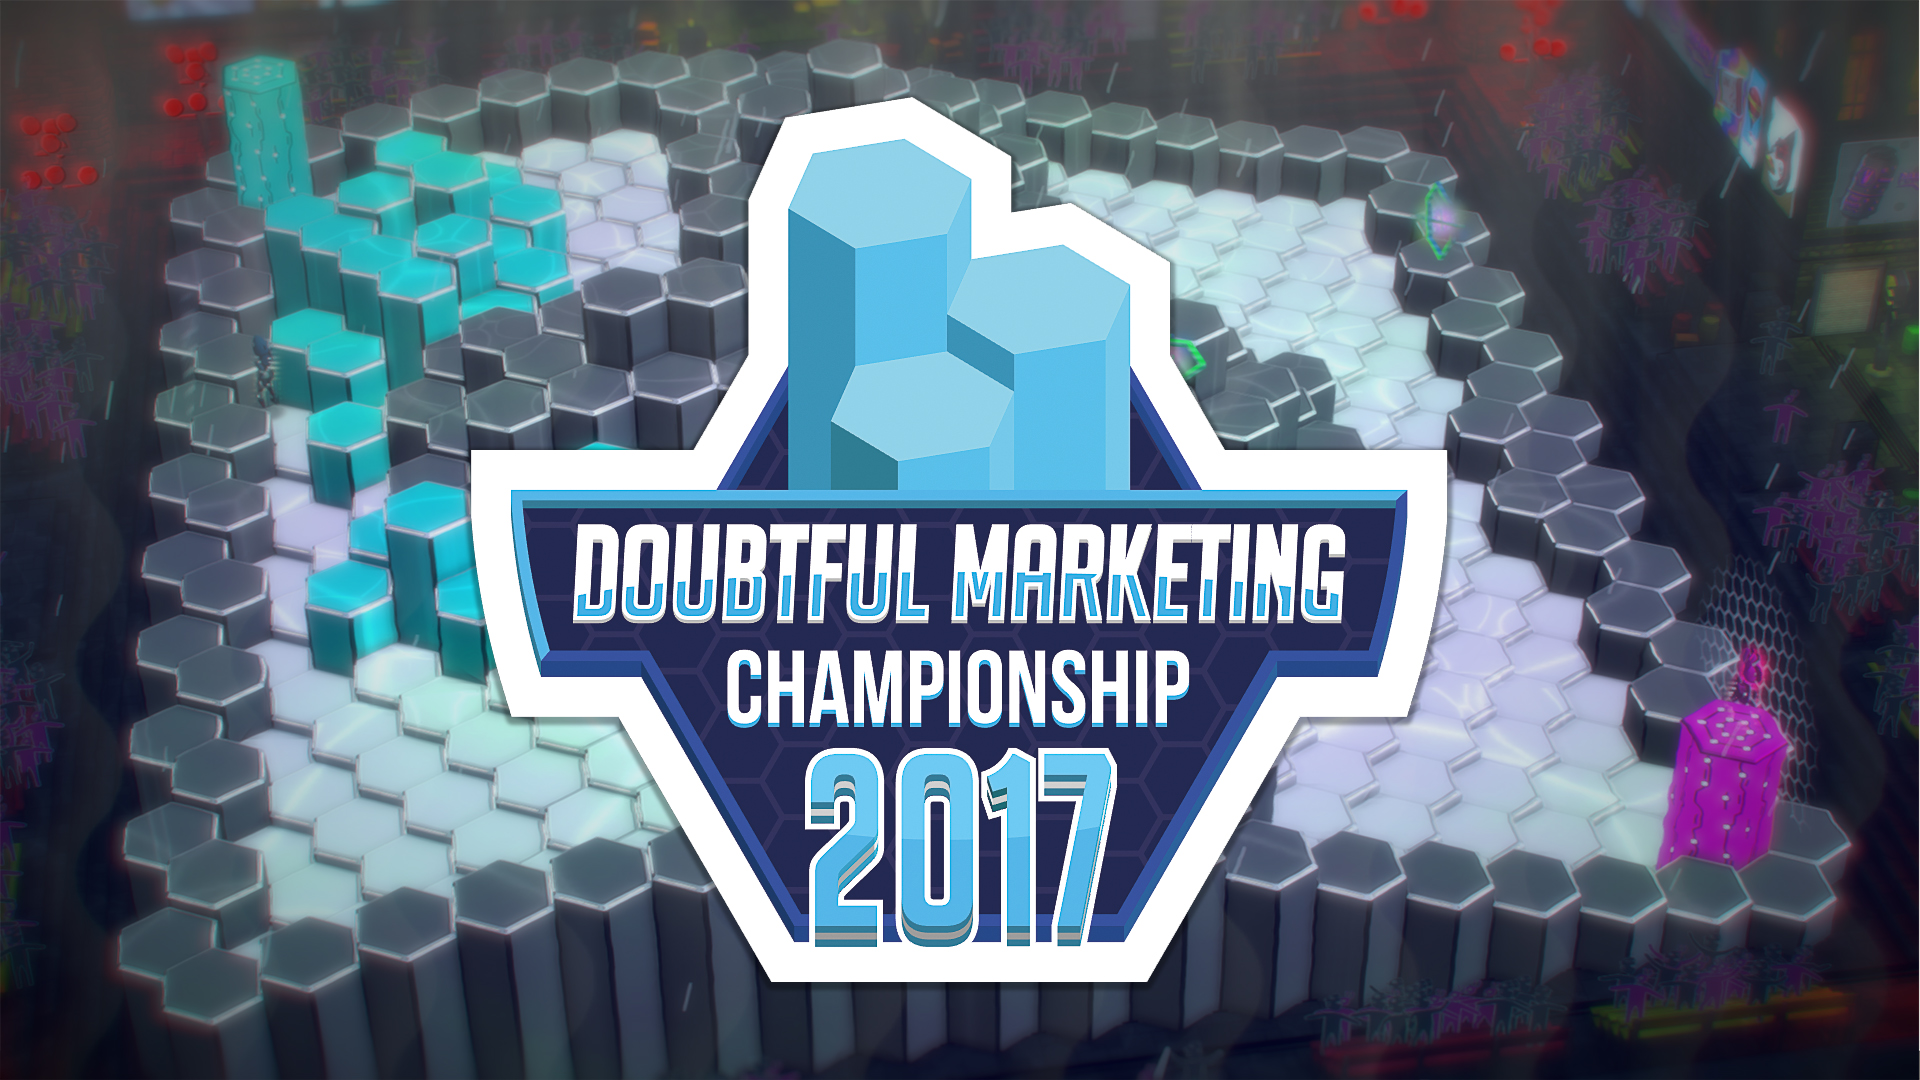 DOUBTFUL MARKETING CHAMPIONSHIP 2017